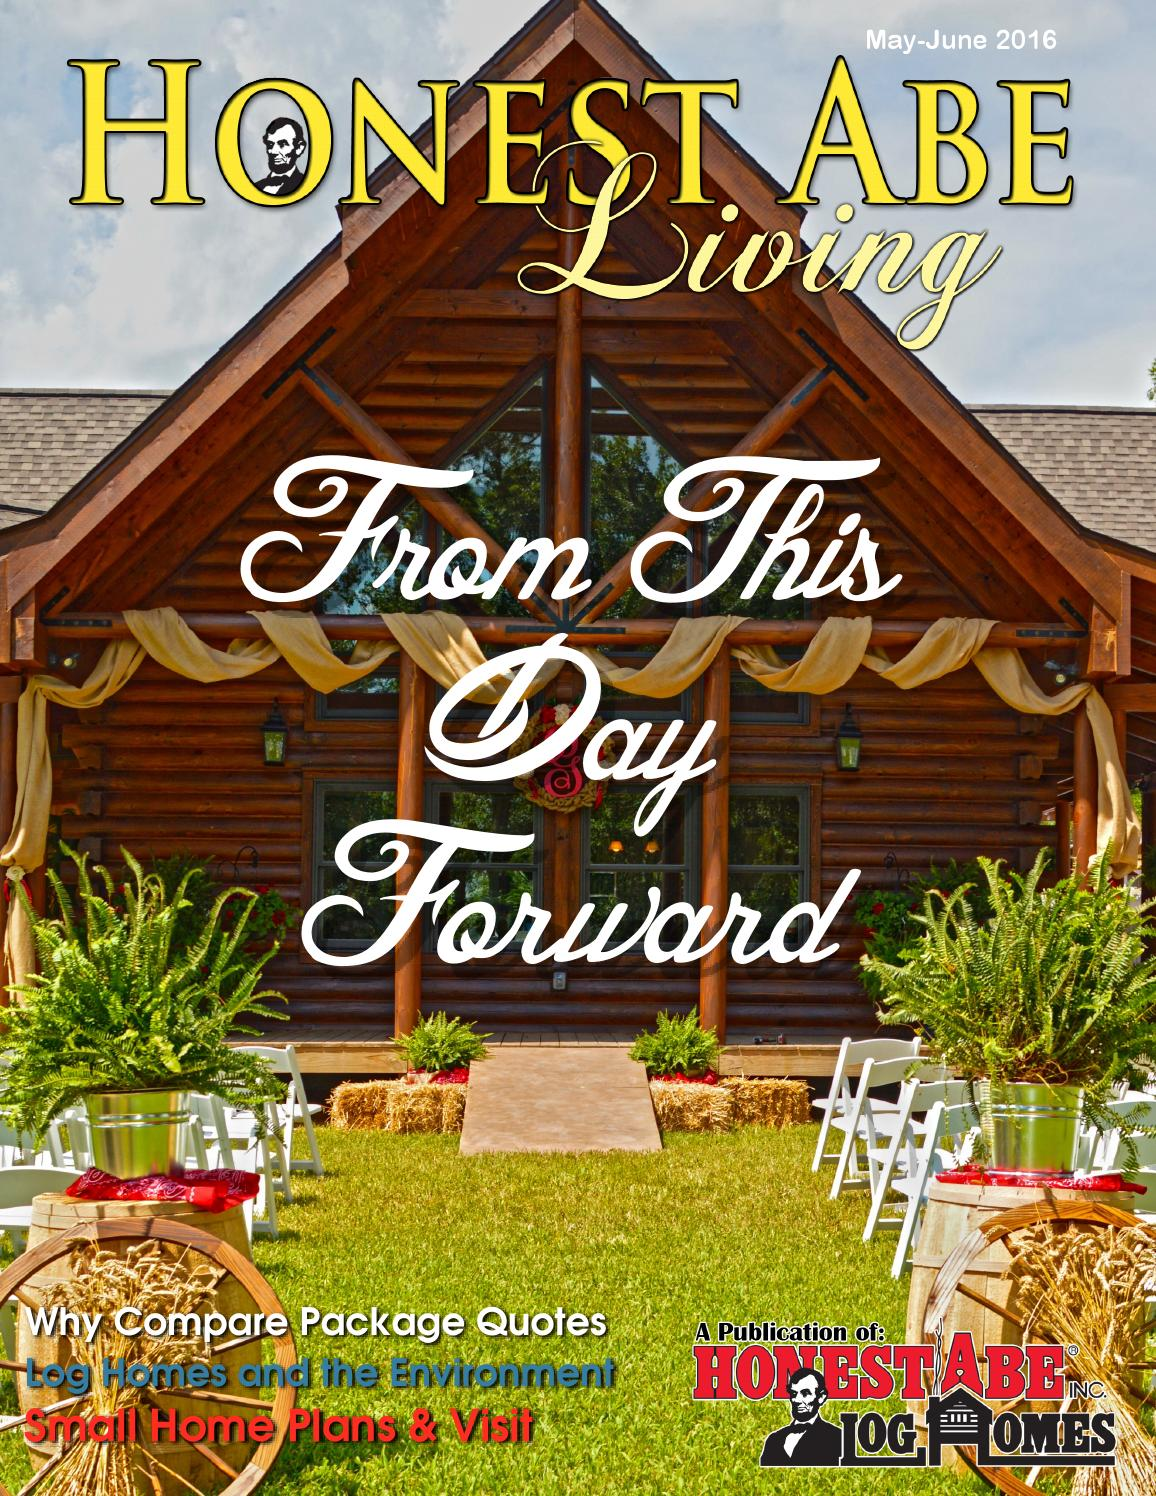 Honest Abe Living, May-June 2016 by Honest Abe Log Homes - issuu